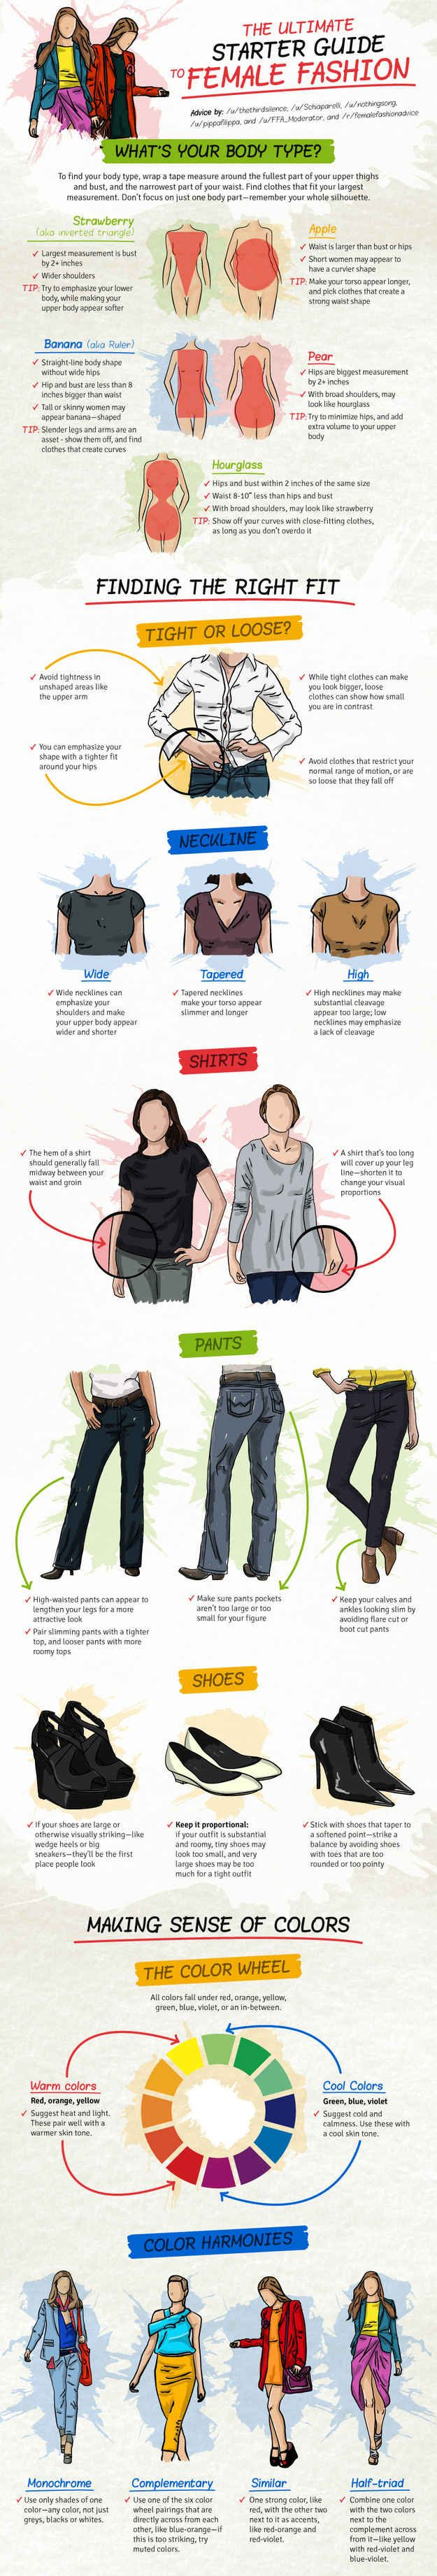 Everything You Need To Know About Women's Fashion